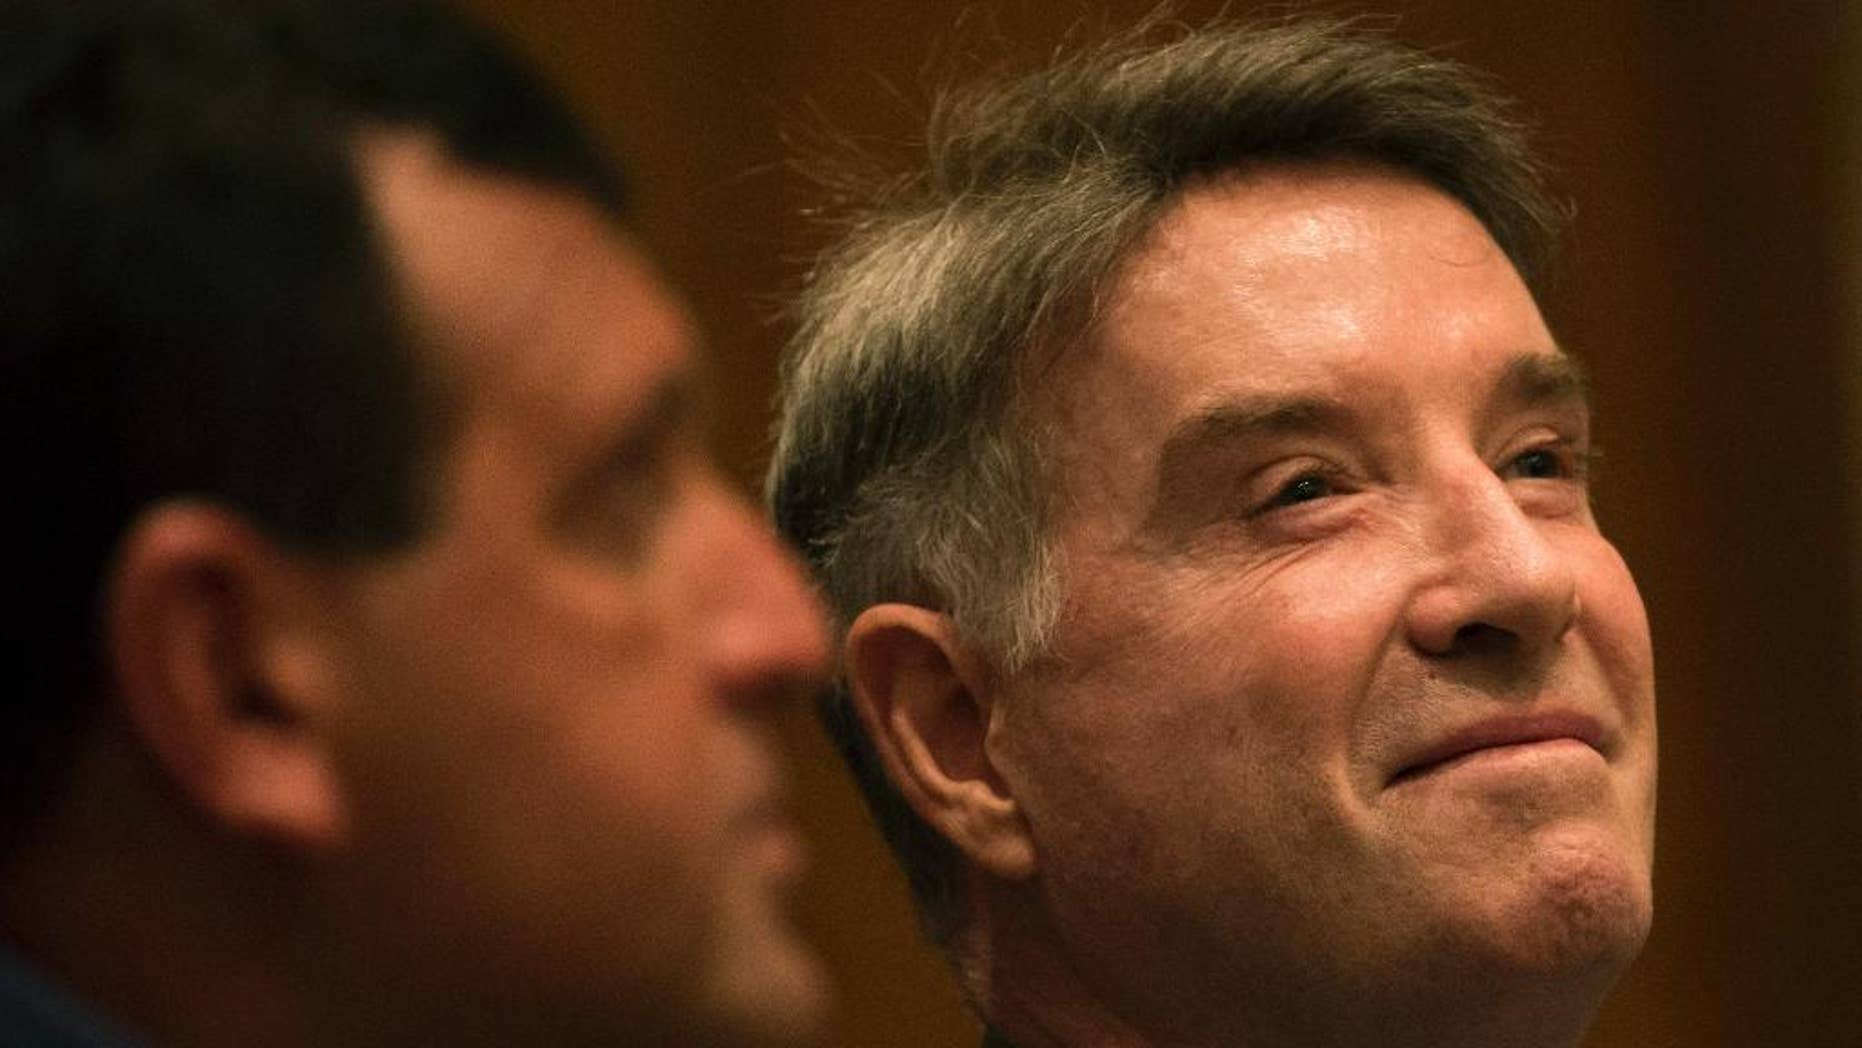 FILE - In this Nov. 18, 2014 file photo, former billionaire Eike Batista, a Brazilian tycoon once named No. 7 on Forbes' list of the world's richest people, attends his hearing at a federal criminal court in Rio de Janeiro, Brazil. On Tuesday, April 28, 2015, a Rio de Janeiro judge has ordered the return of Batista's seized property, who's now fighting inside trading and other charges. (AP Photo/Felipe Dana, File)